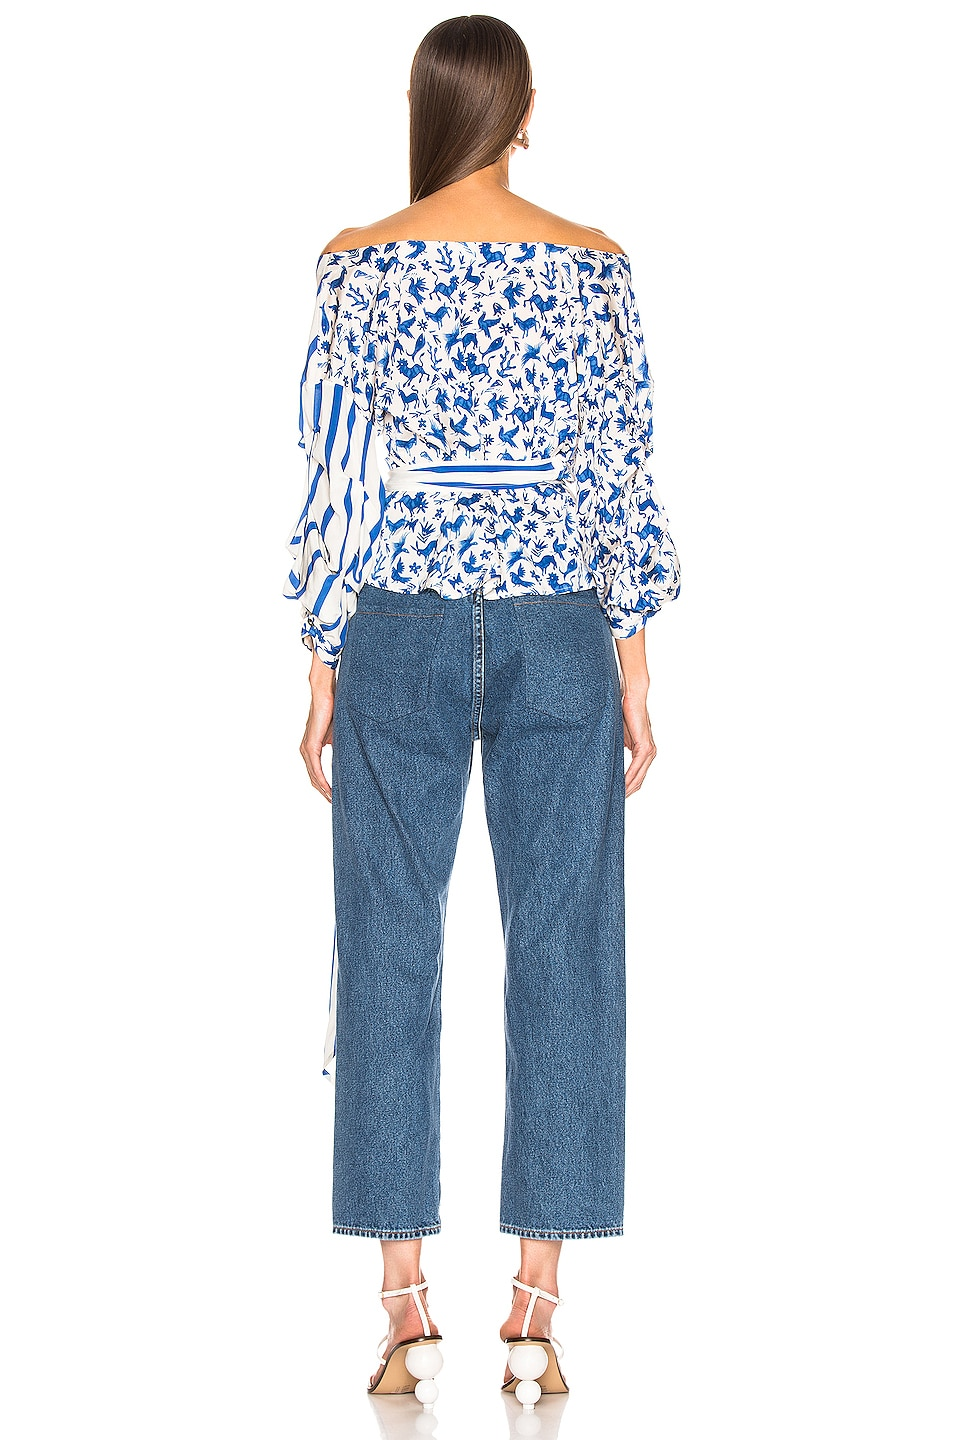 Image 3 of we are LEONE Stella Wrap Top in Blue Mexican Animals with Stripes